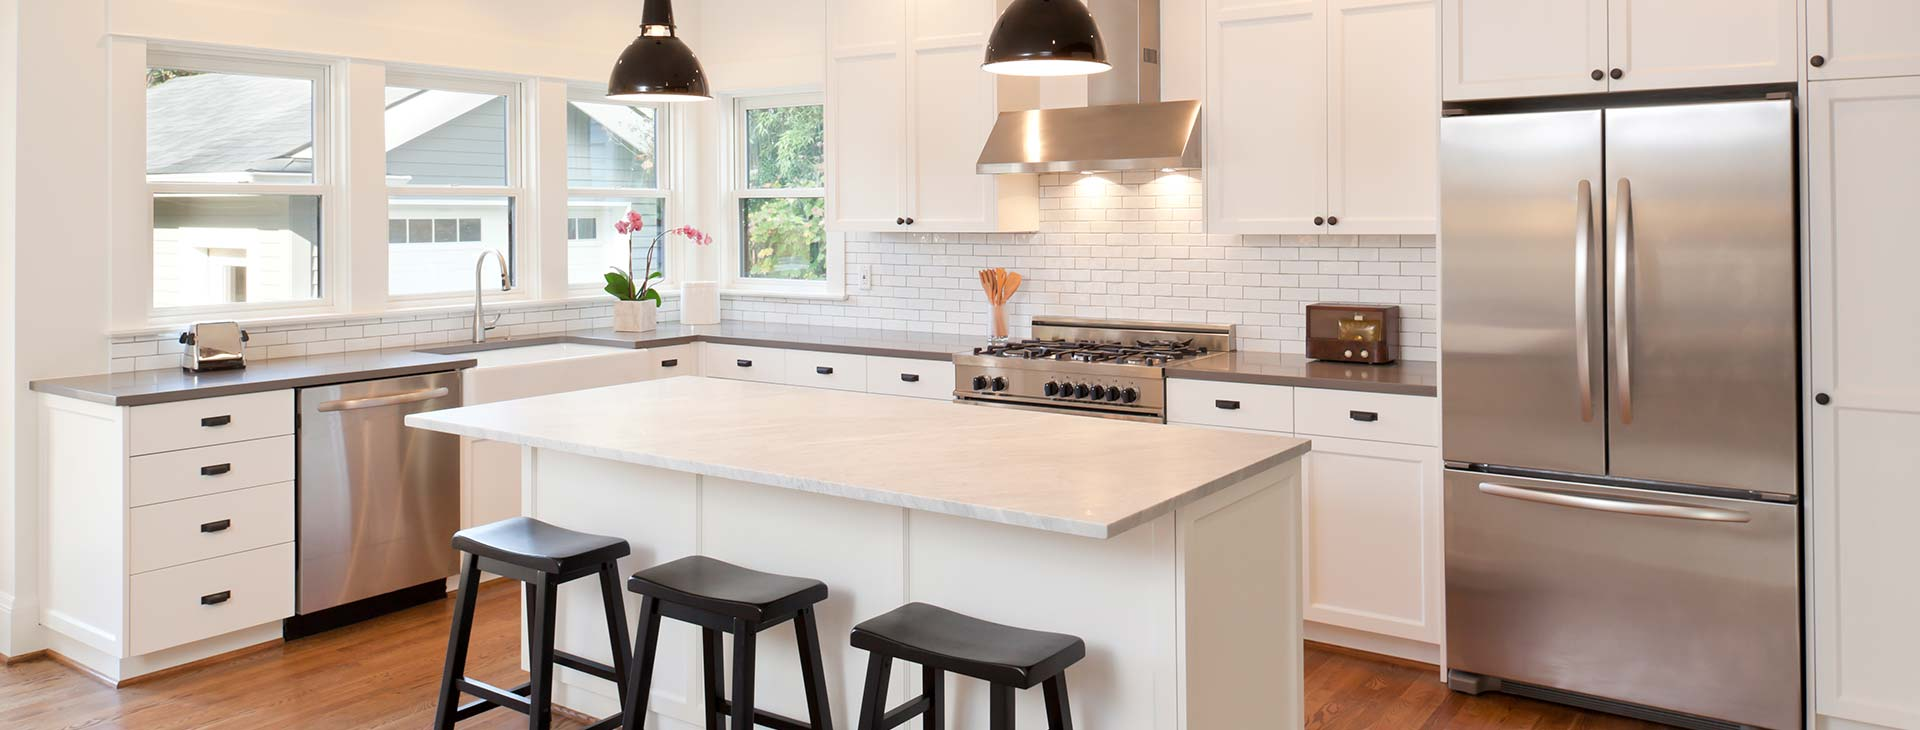 Stainless steel black and white themed renovated kitchen